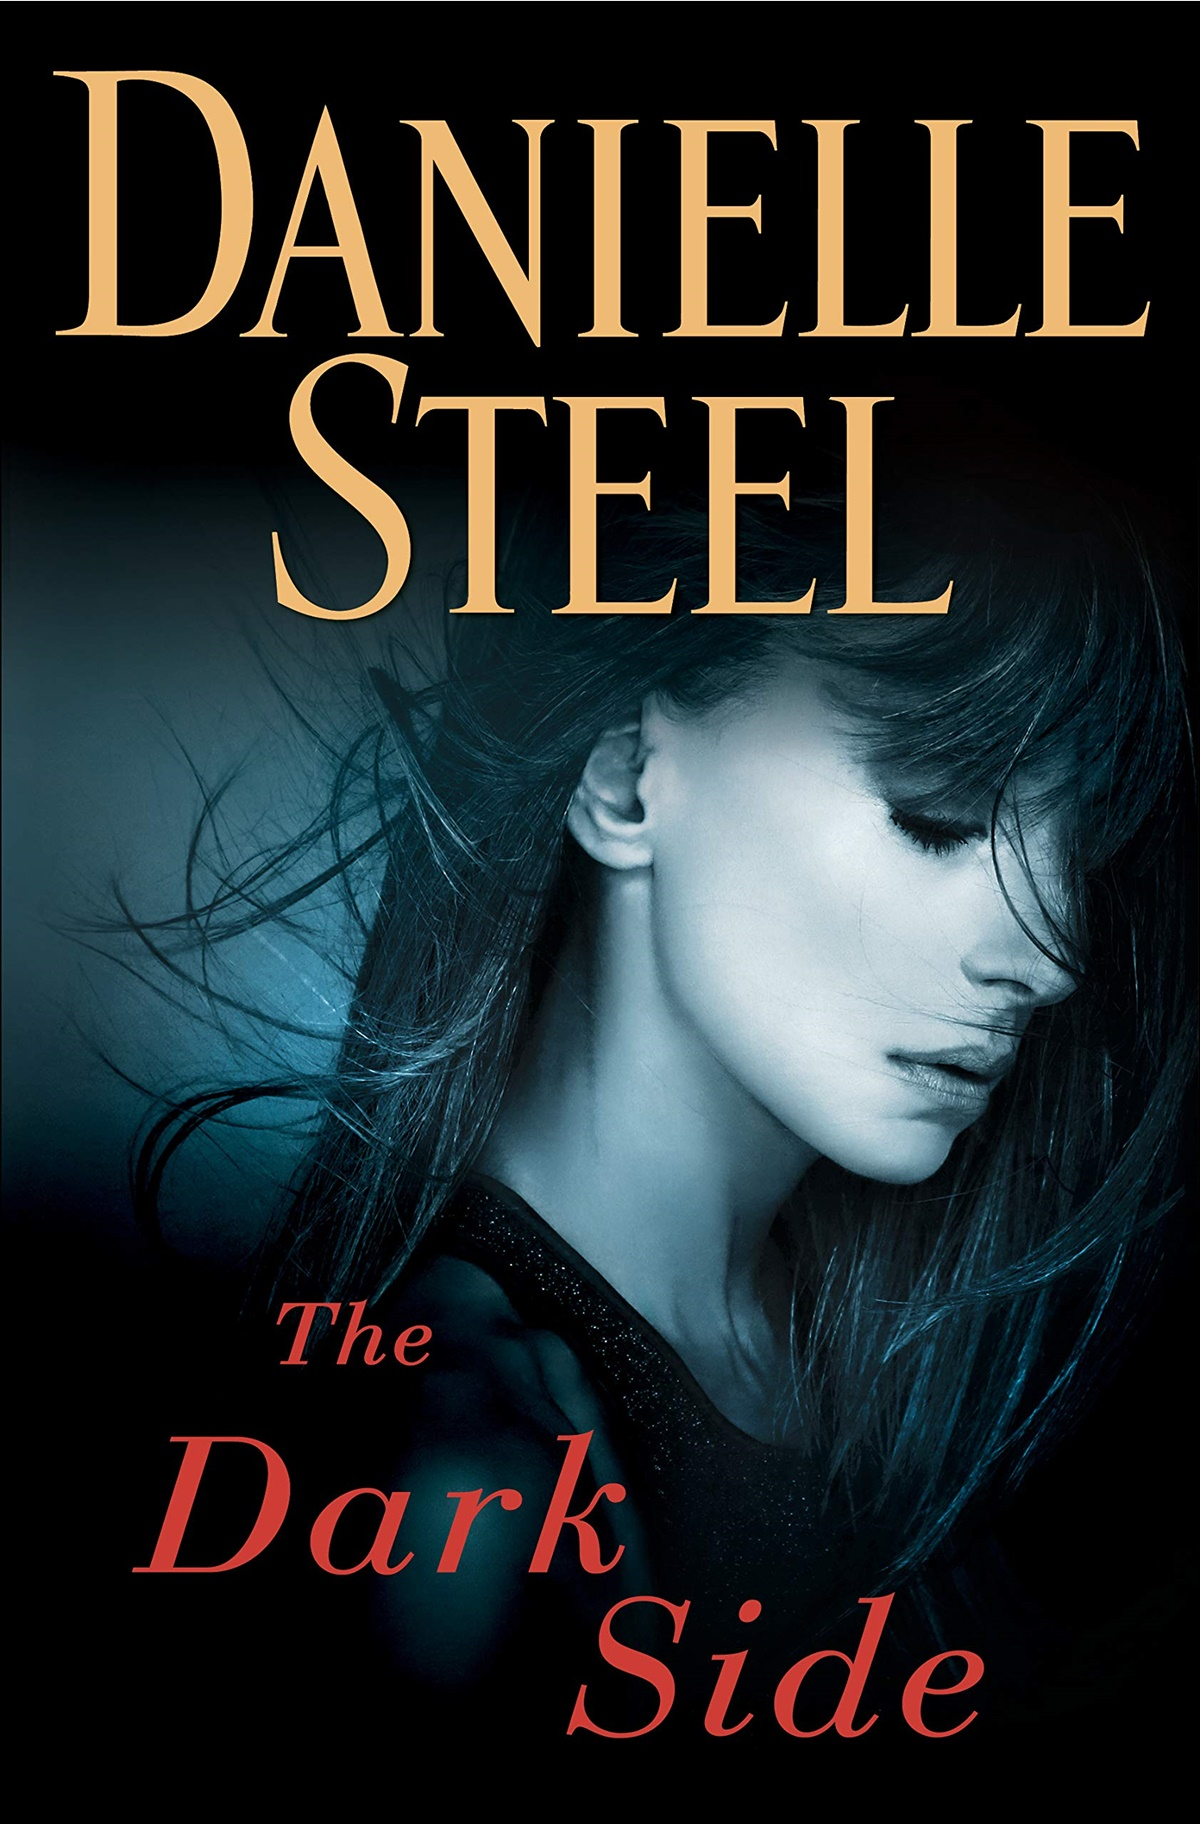 Danielle Steel Books, cover of the Dark Side by Danielle Steel, books